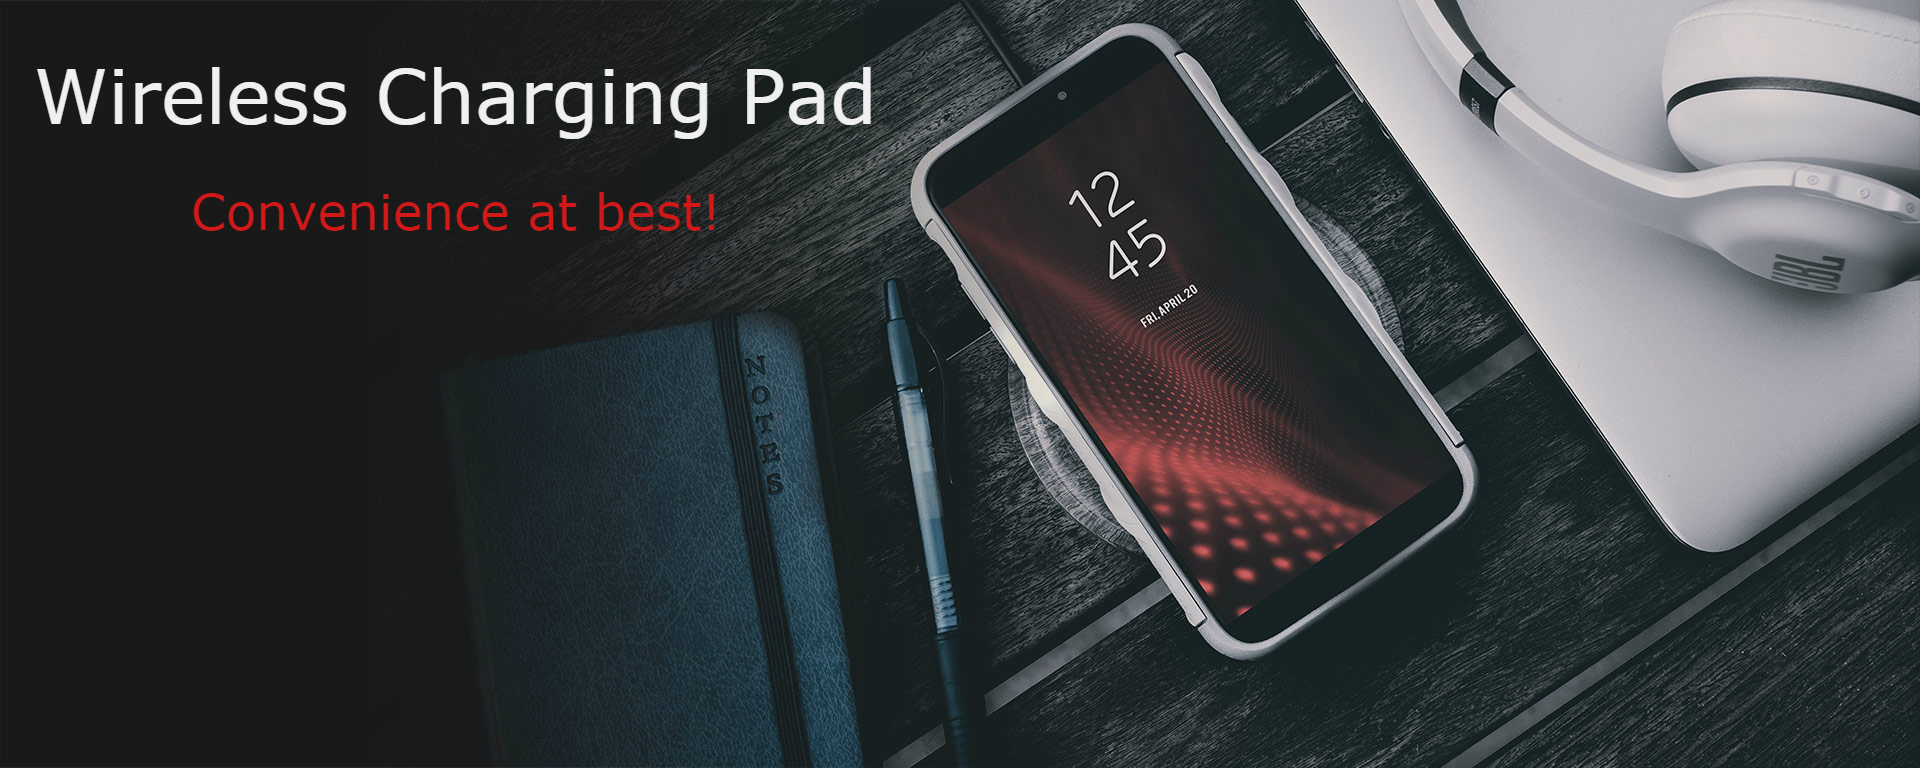 wireless-charging-pad-banner-picture-2.jpg